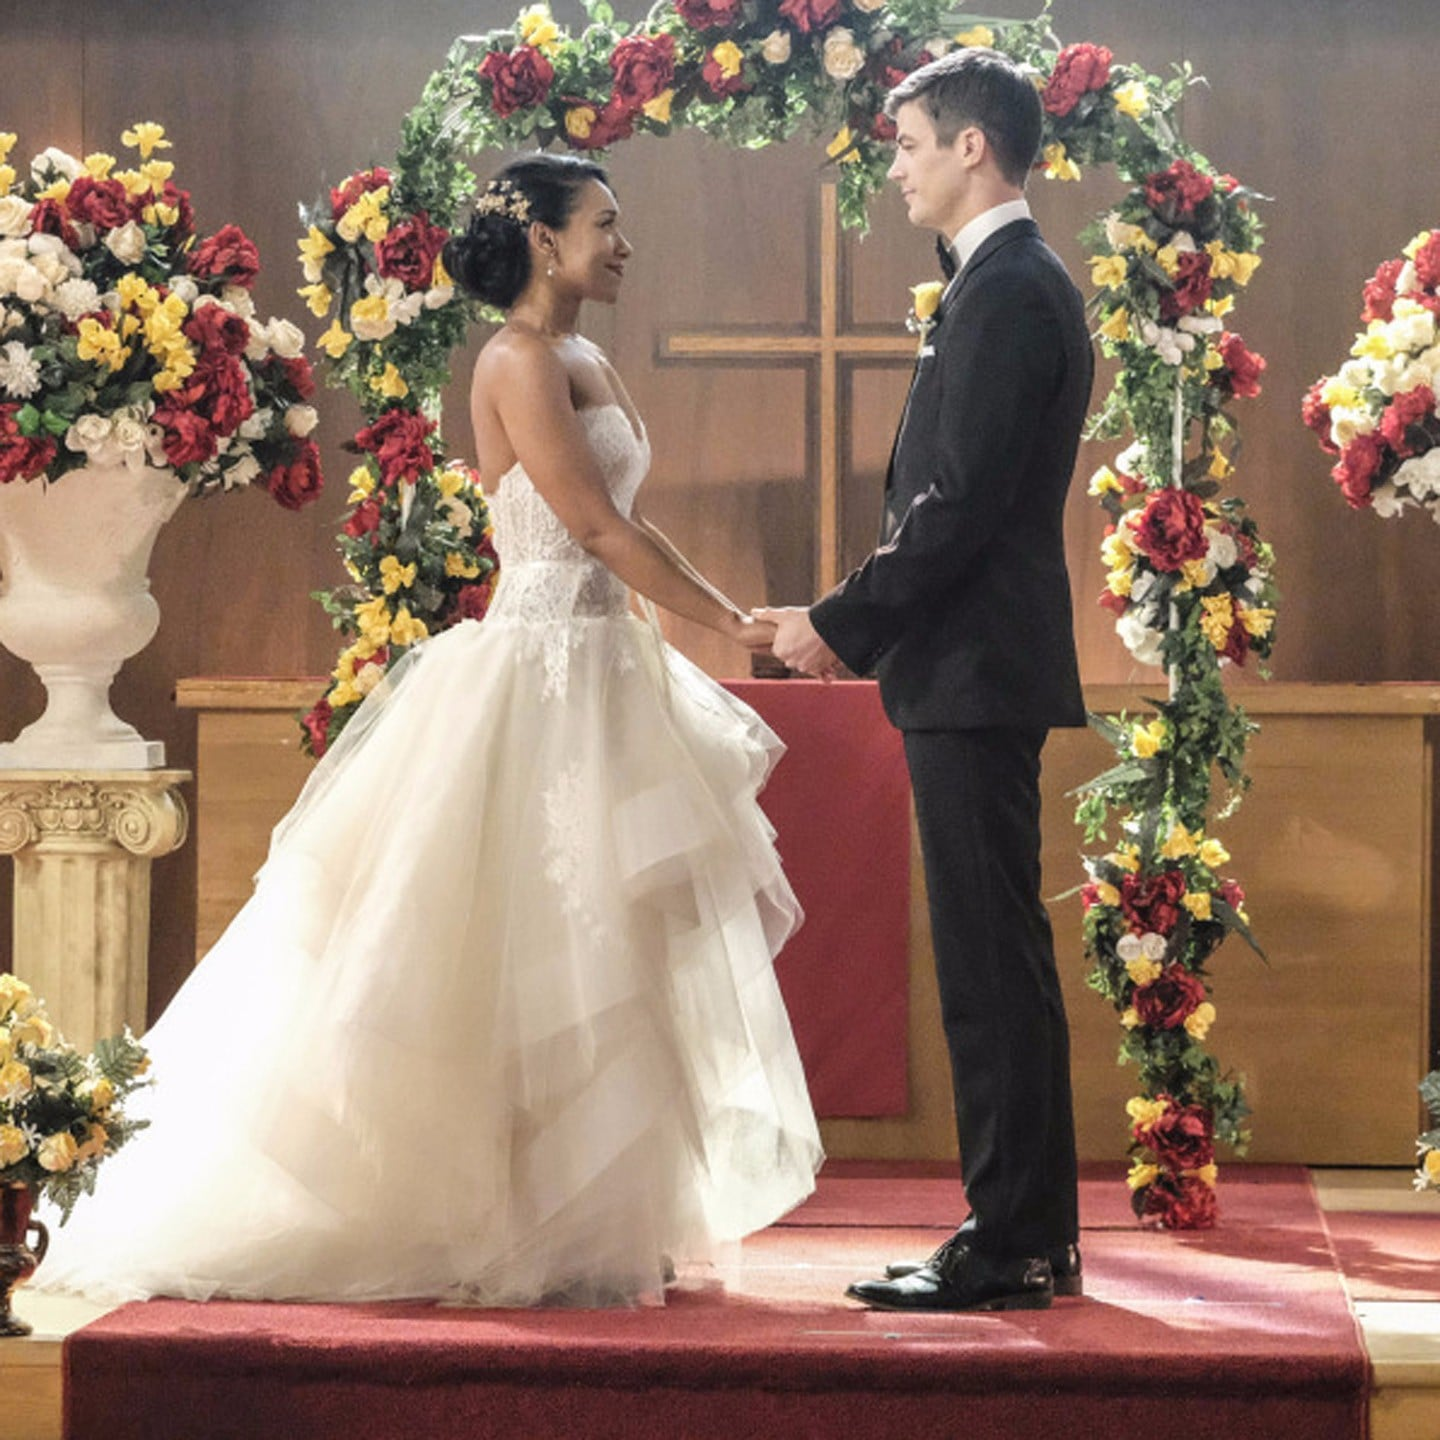 Barry and Iris's Wedding on The Flash | POPSUGAR Entertainment Photo 7